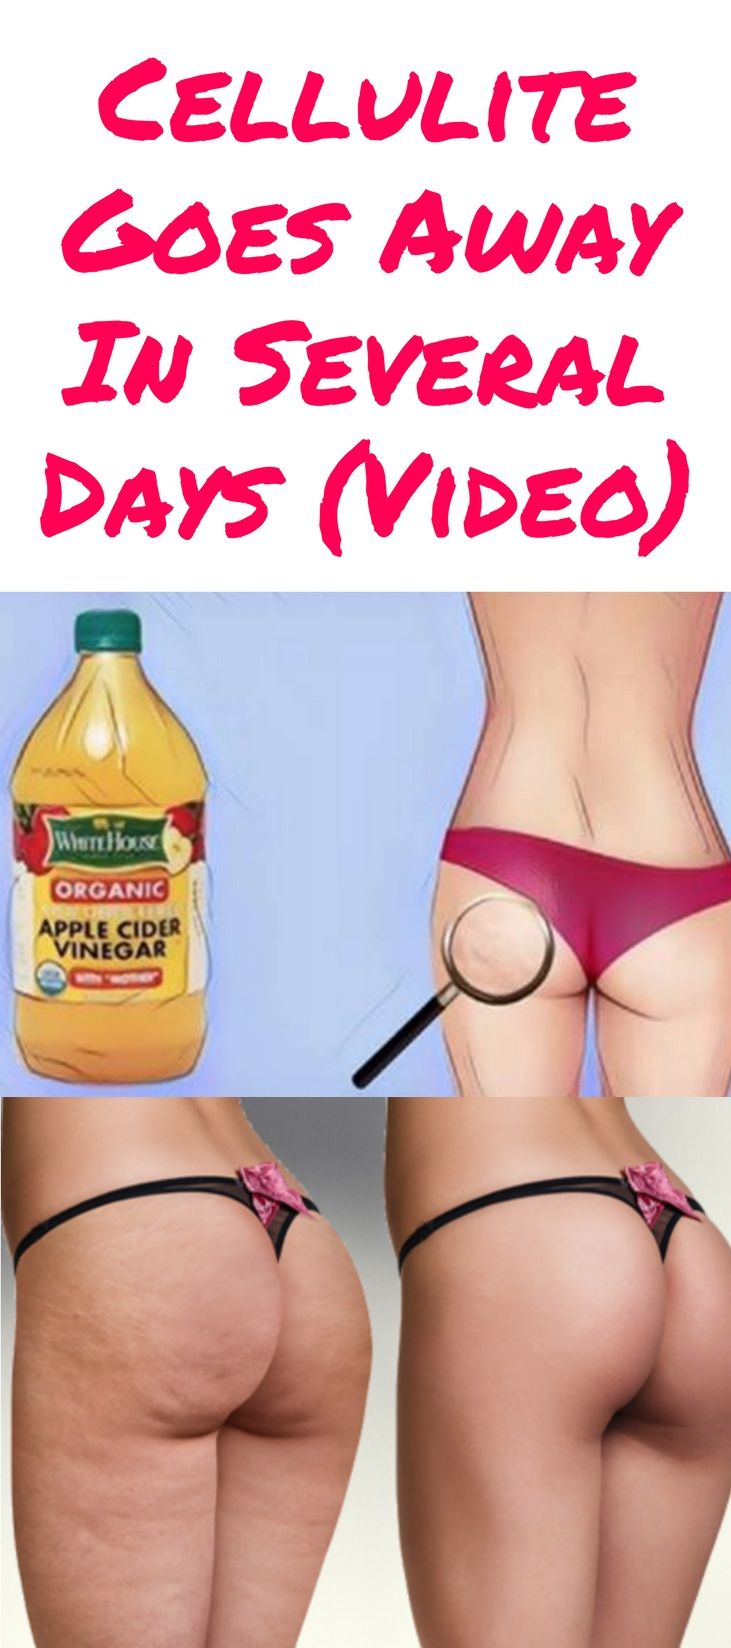 Cellulite Goes Away In Several Days #Health #Wellness #Fitness #Tips #Food #Motivation #Remedies #Natural #Mental #Holistic #Skin #Woman's #Facts #Care #Lifestyle #Detox #Beauty #Diet #Body #Nutricion #Skincare #NaturalTreatments #HealthyLifestyle